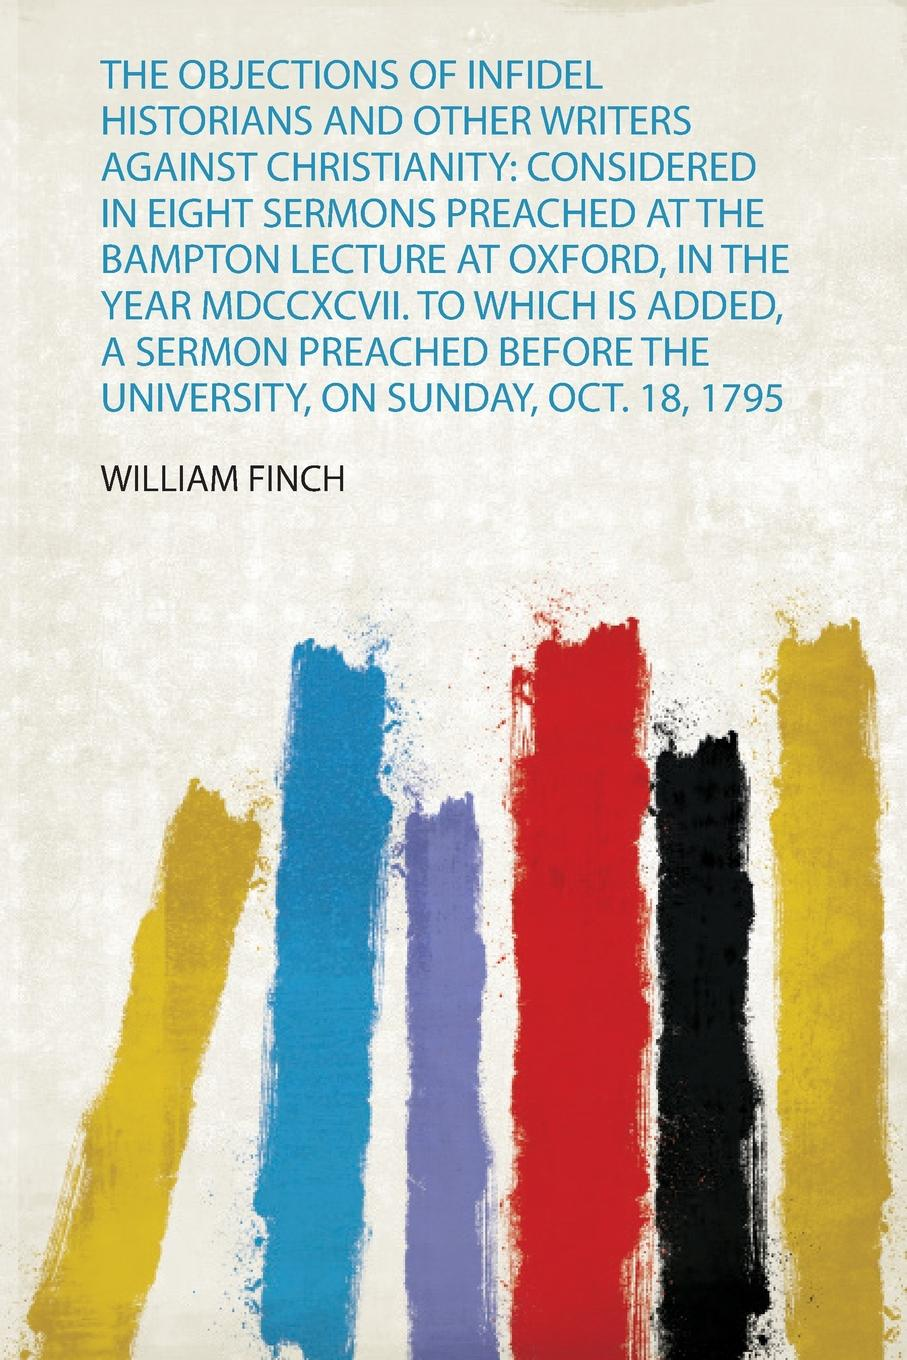 The Objections of Infidel Historians and Other Writers Against Christianity. Considered in Eight Sermons Preached at the Bampton Lecture at Oxford, in the Year Mdccxcvii. to Which Is Added, a Sermon Preached Before the University, on Sunday, Oct. ... henry wace the foundations of faith considered in eight sermons preached before the university of oxford in the year mdccclxxix